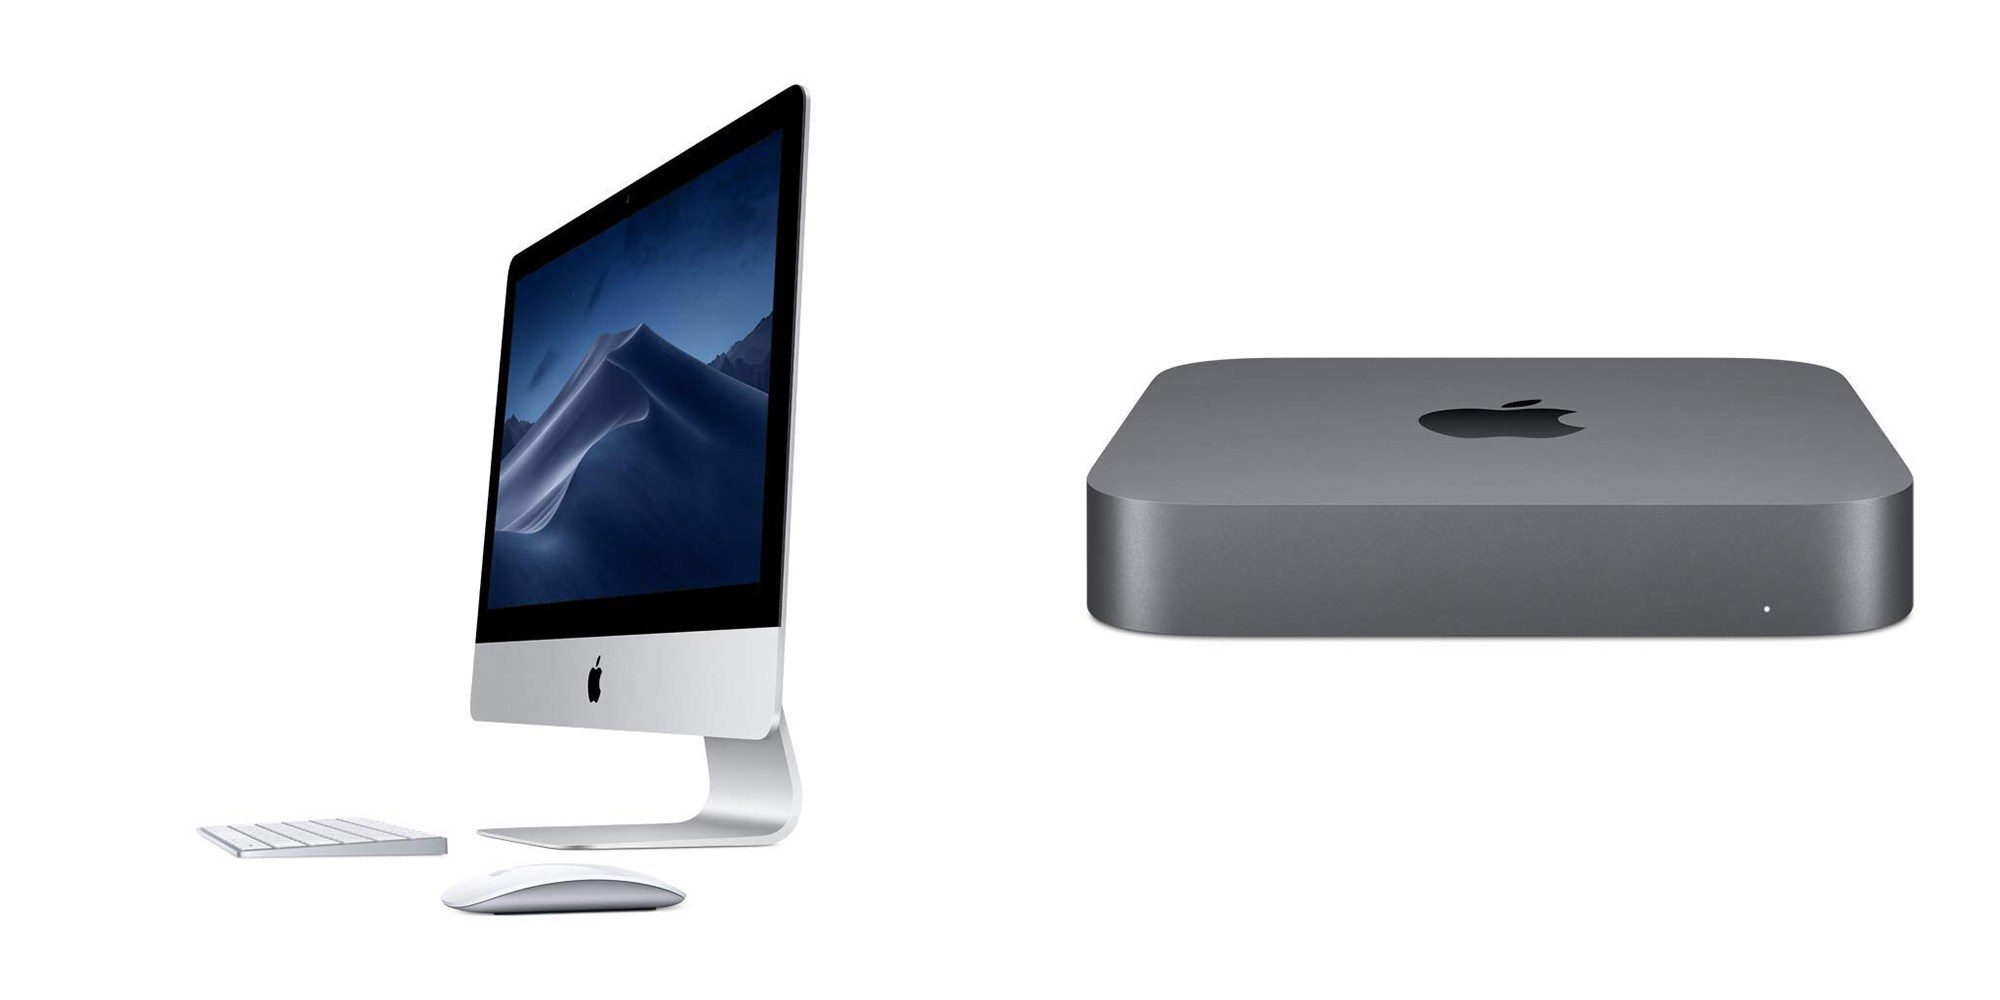 9to5Toys Lunch Break: iMac & Mac mini up to $300 off, Amazon Mac Accessory Sale from $20, iTunes Movies from $1, more